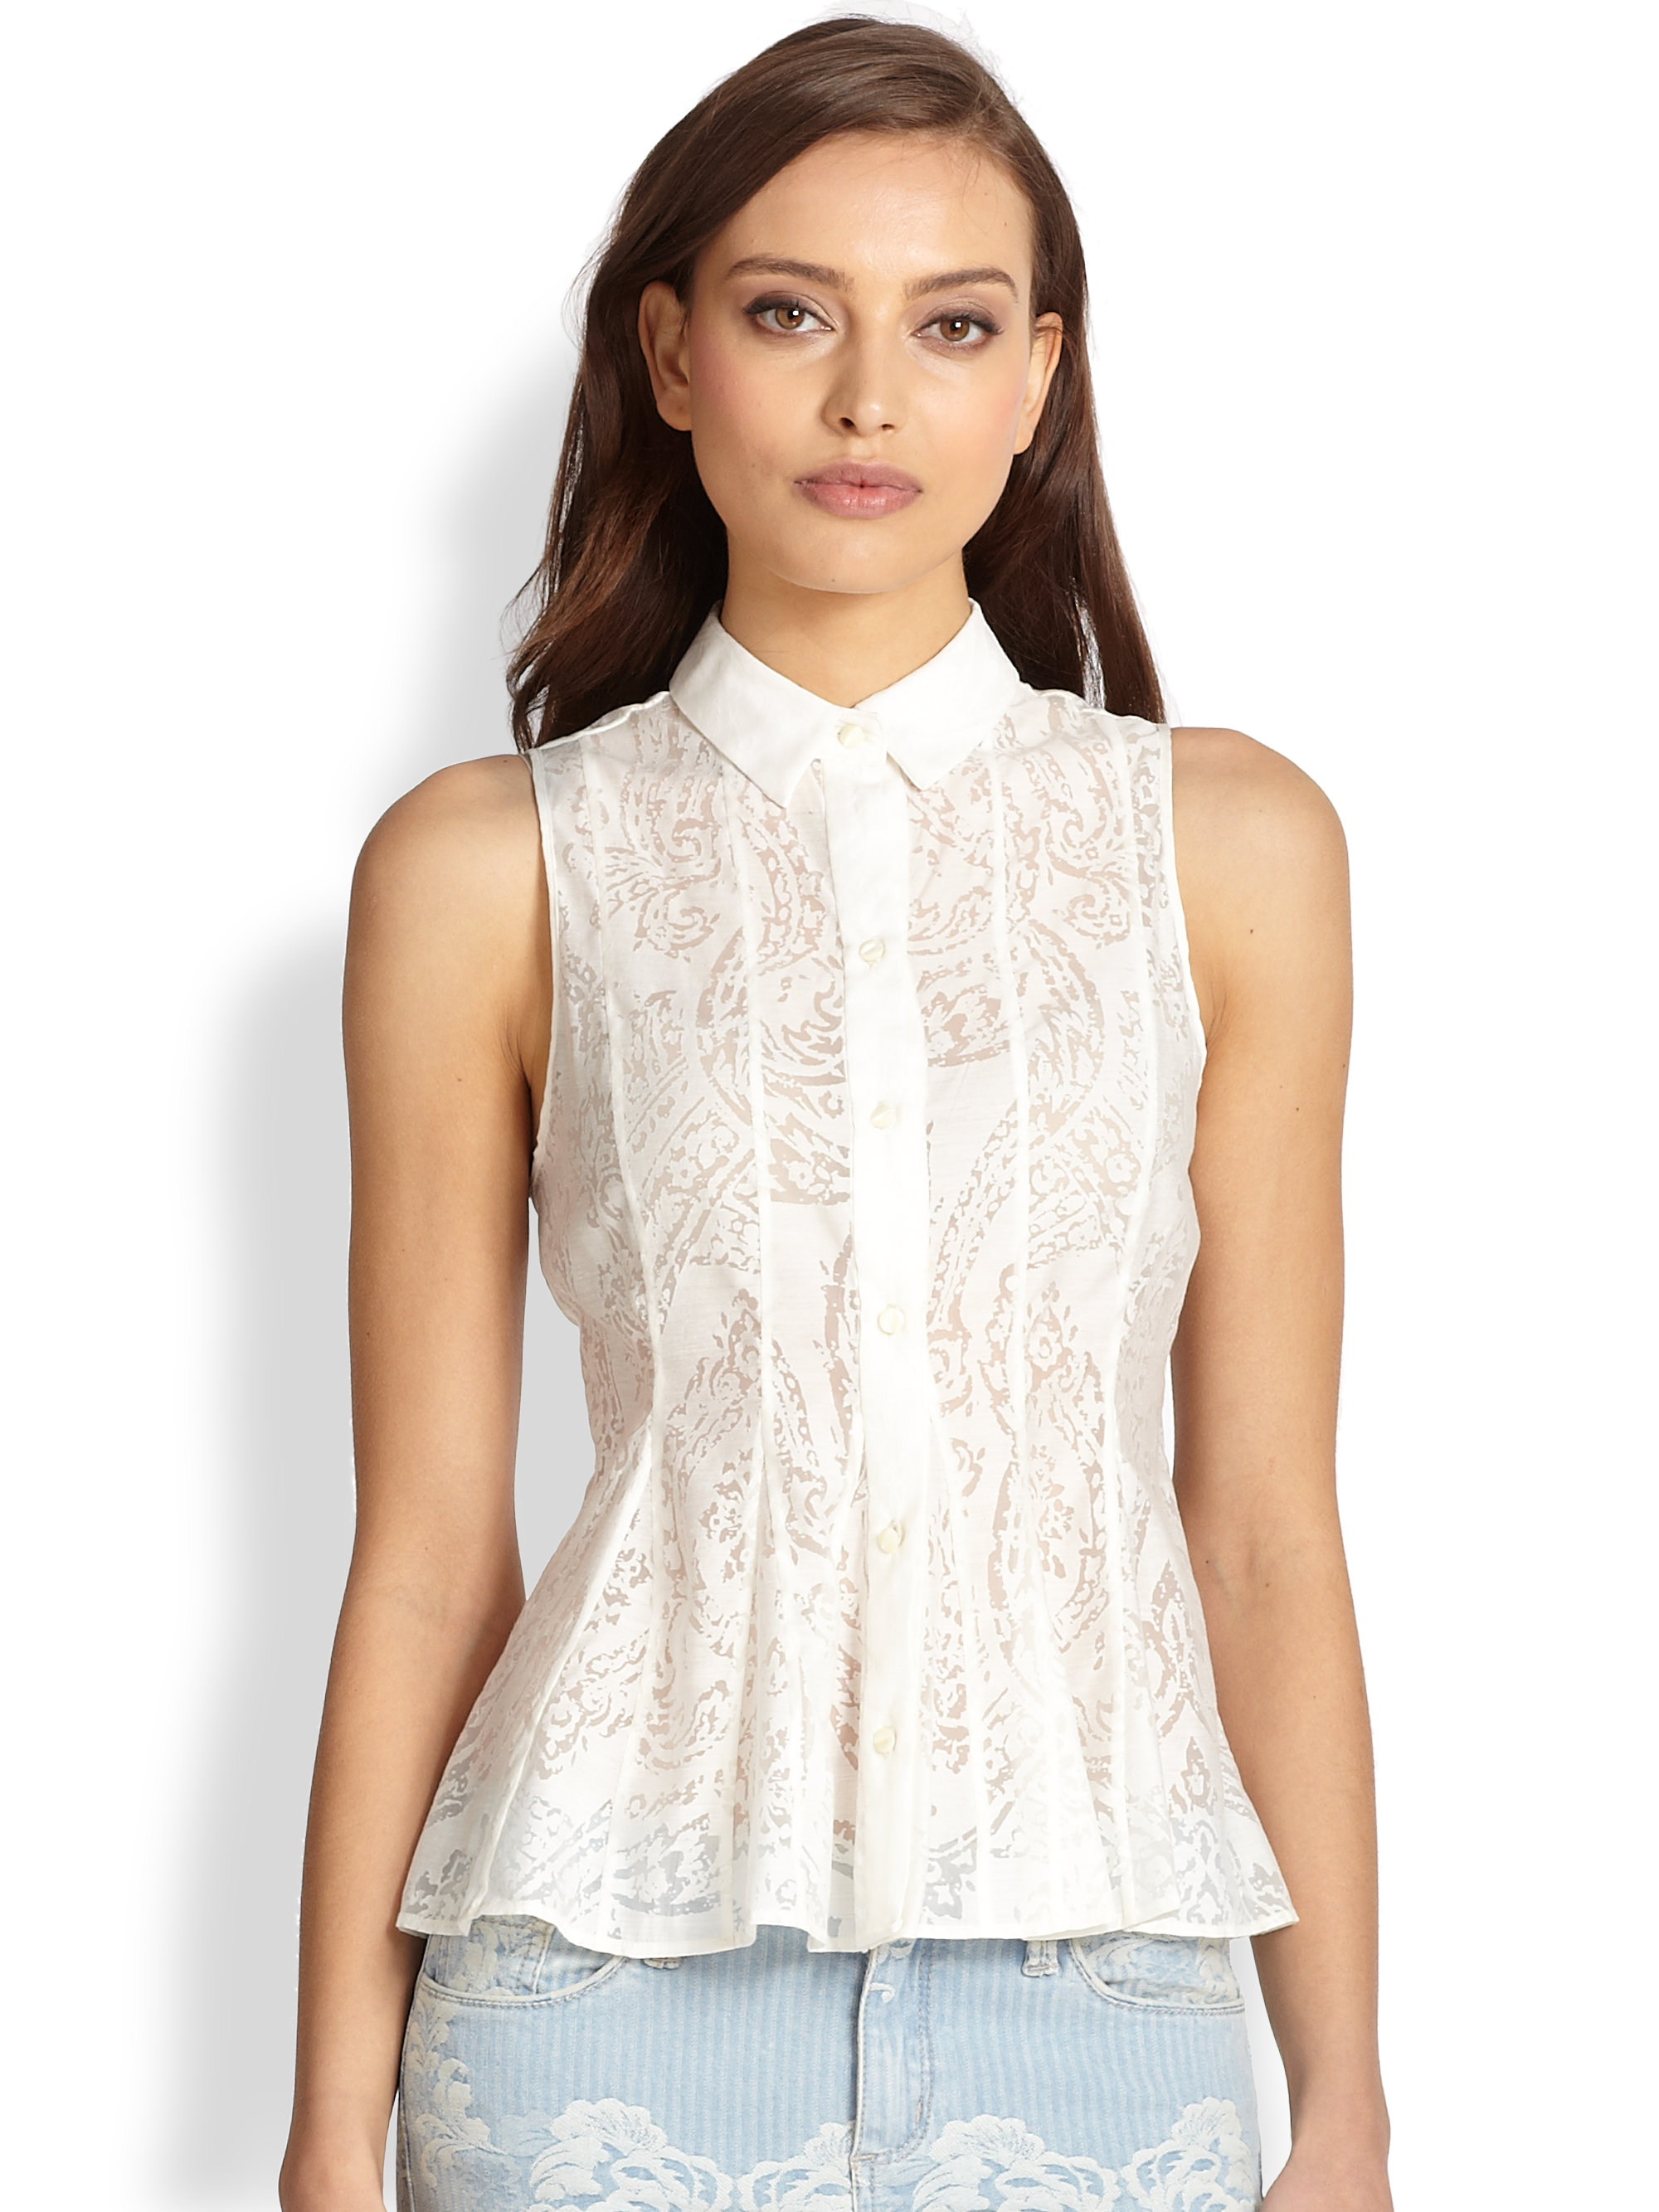 Sleeveless tops are a lovely cooling option to have when the weather is warm, we stock a wide range of cheap sleeveless tops. Each one has been carefully selected by our team.